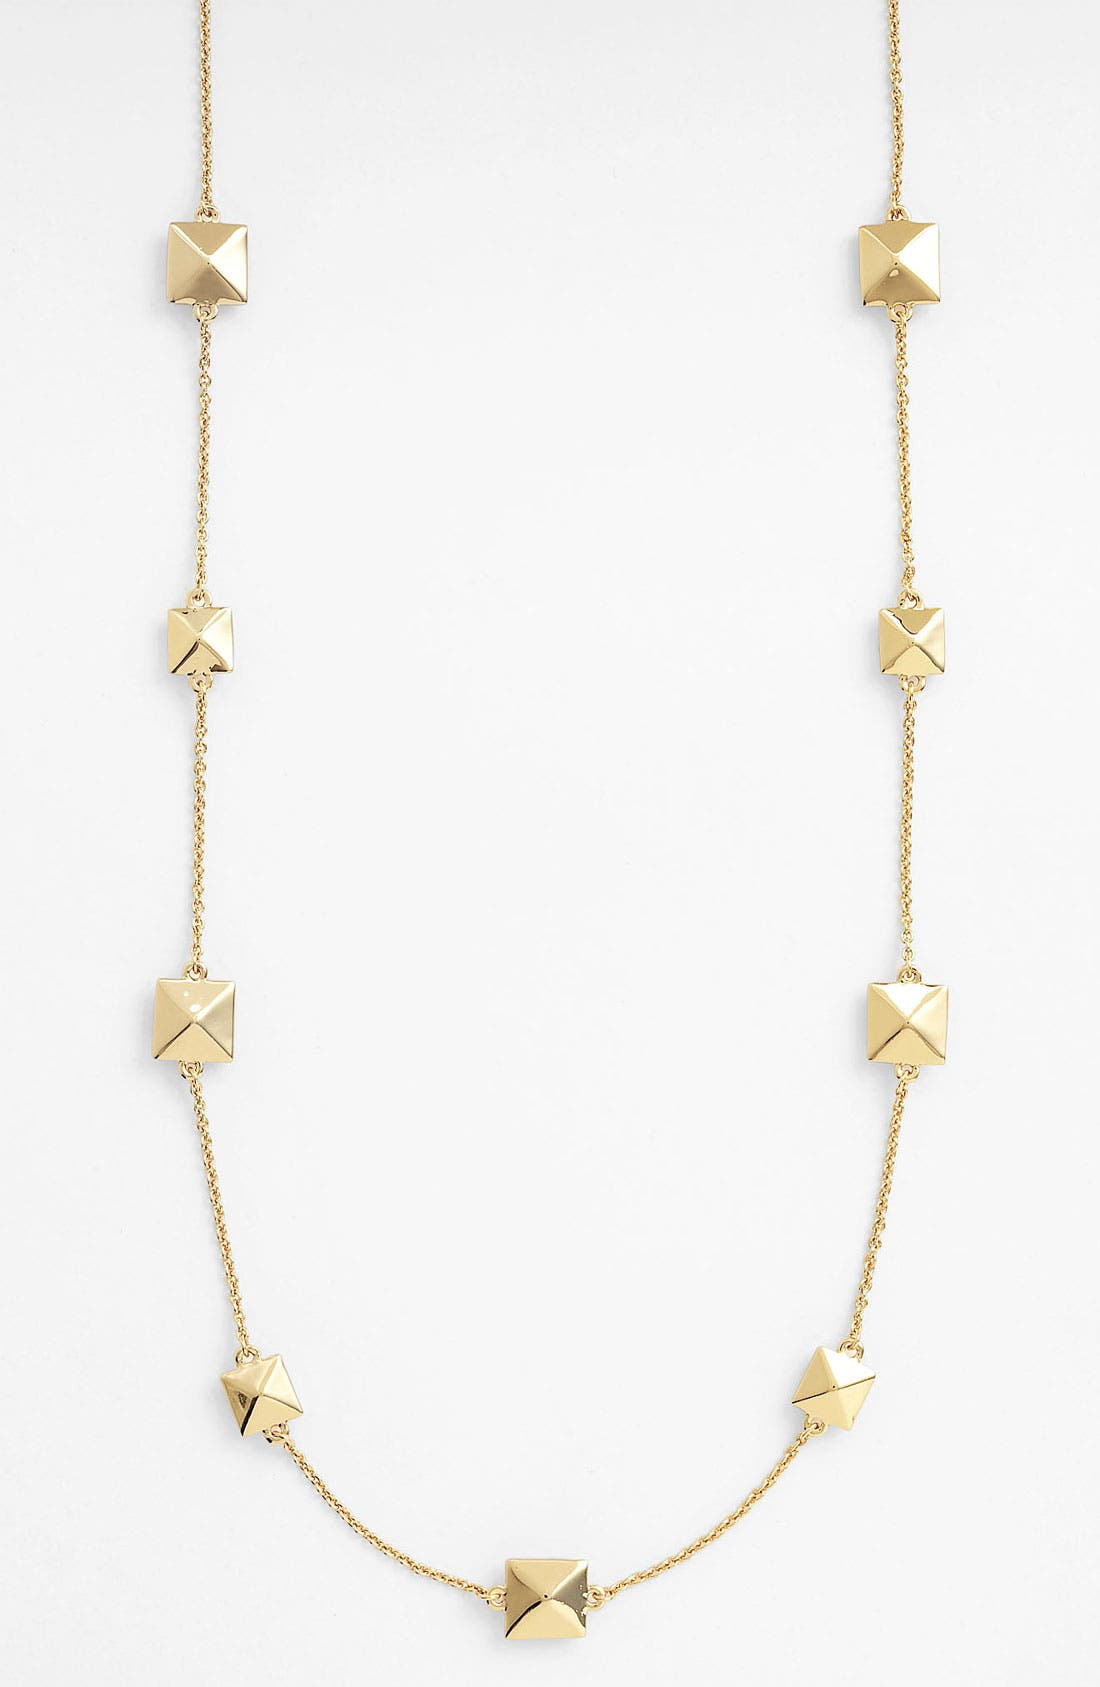 Main Image - kate spade new york 'locked in' long pyramid necklace